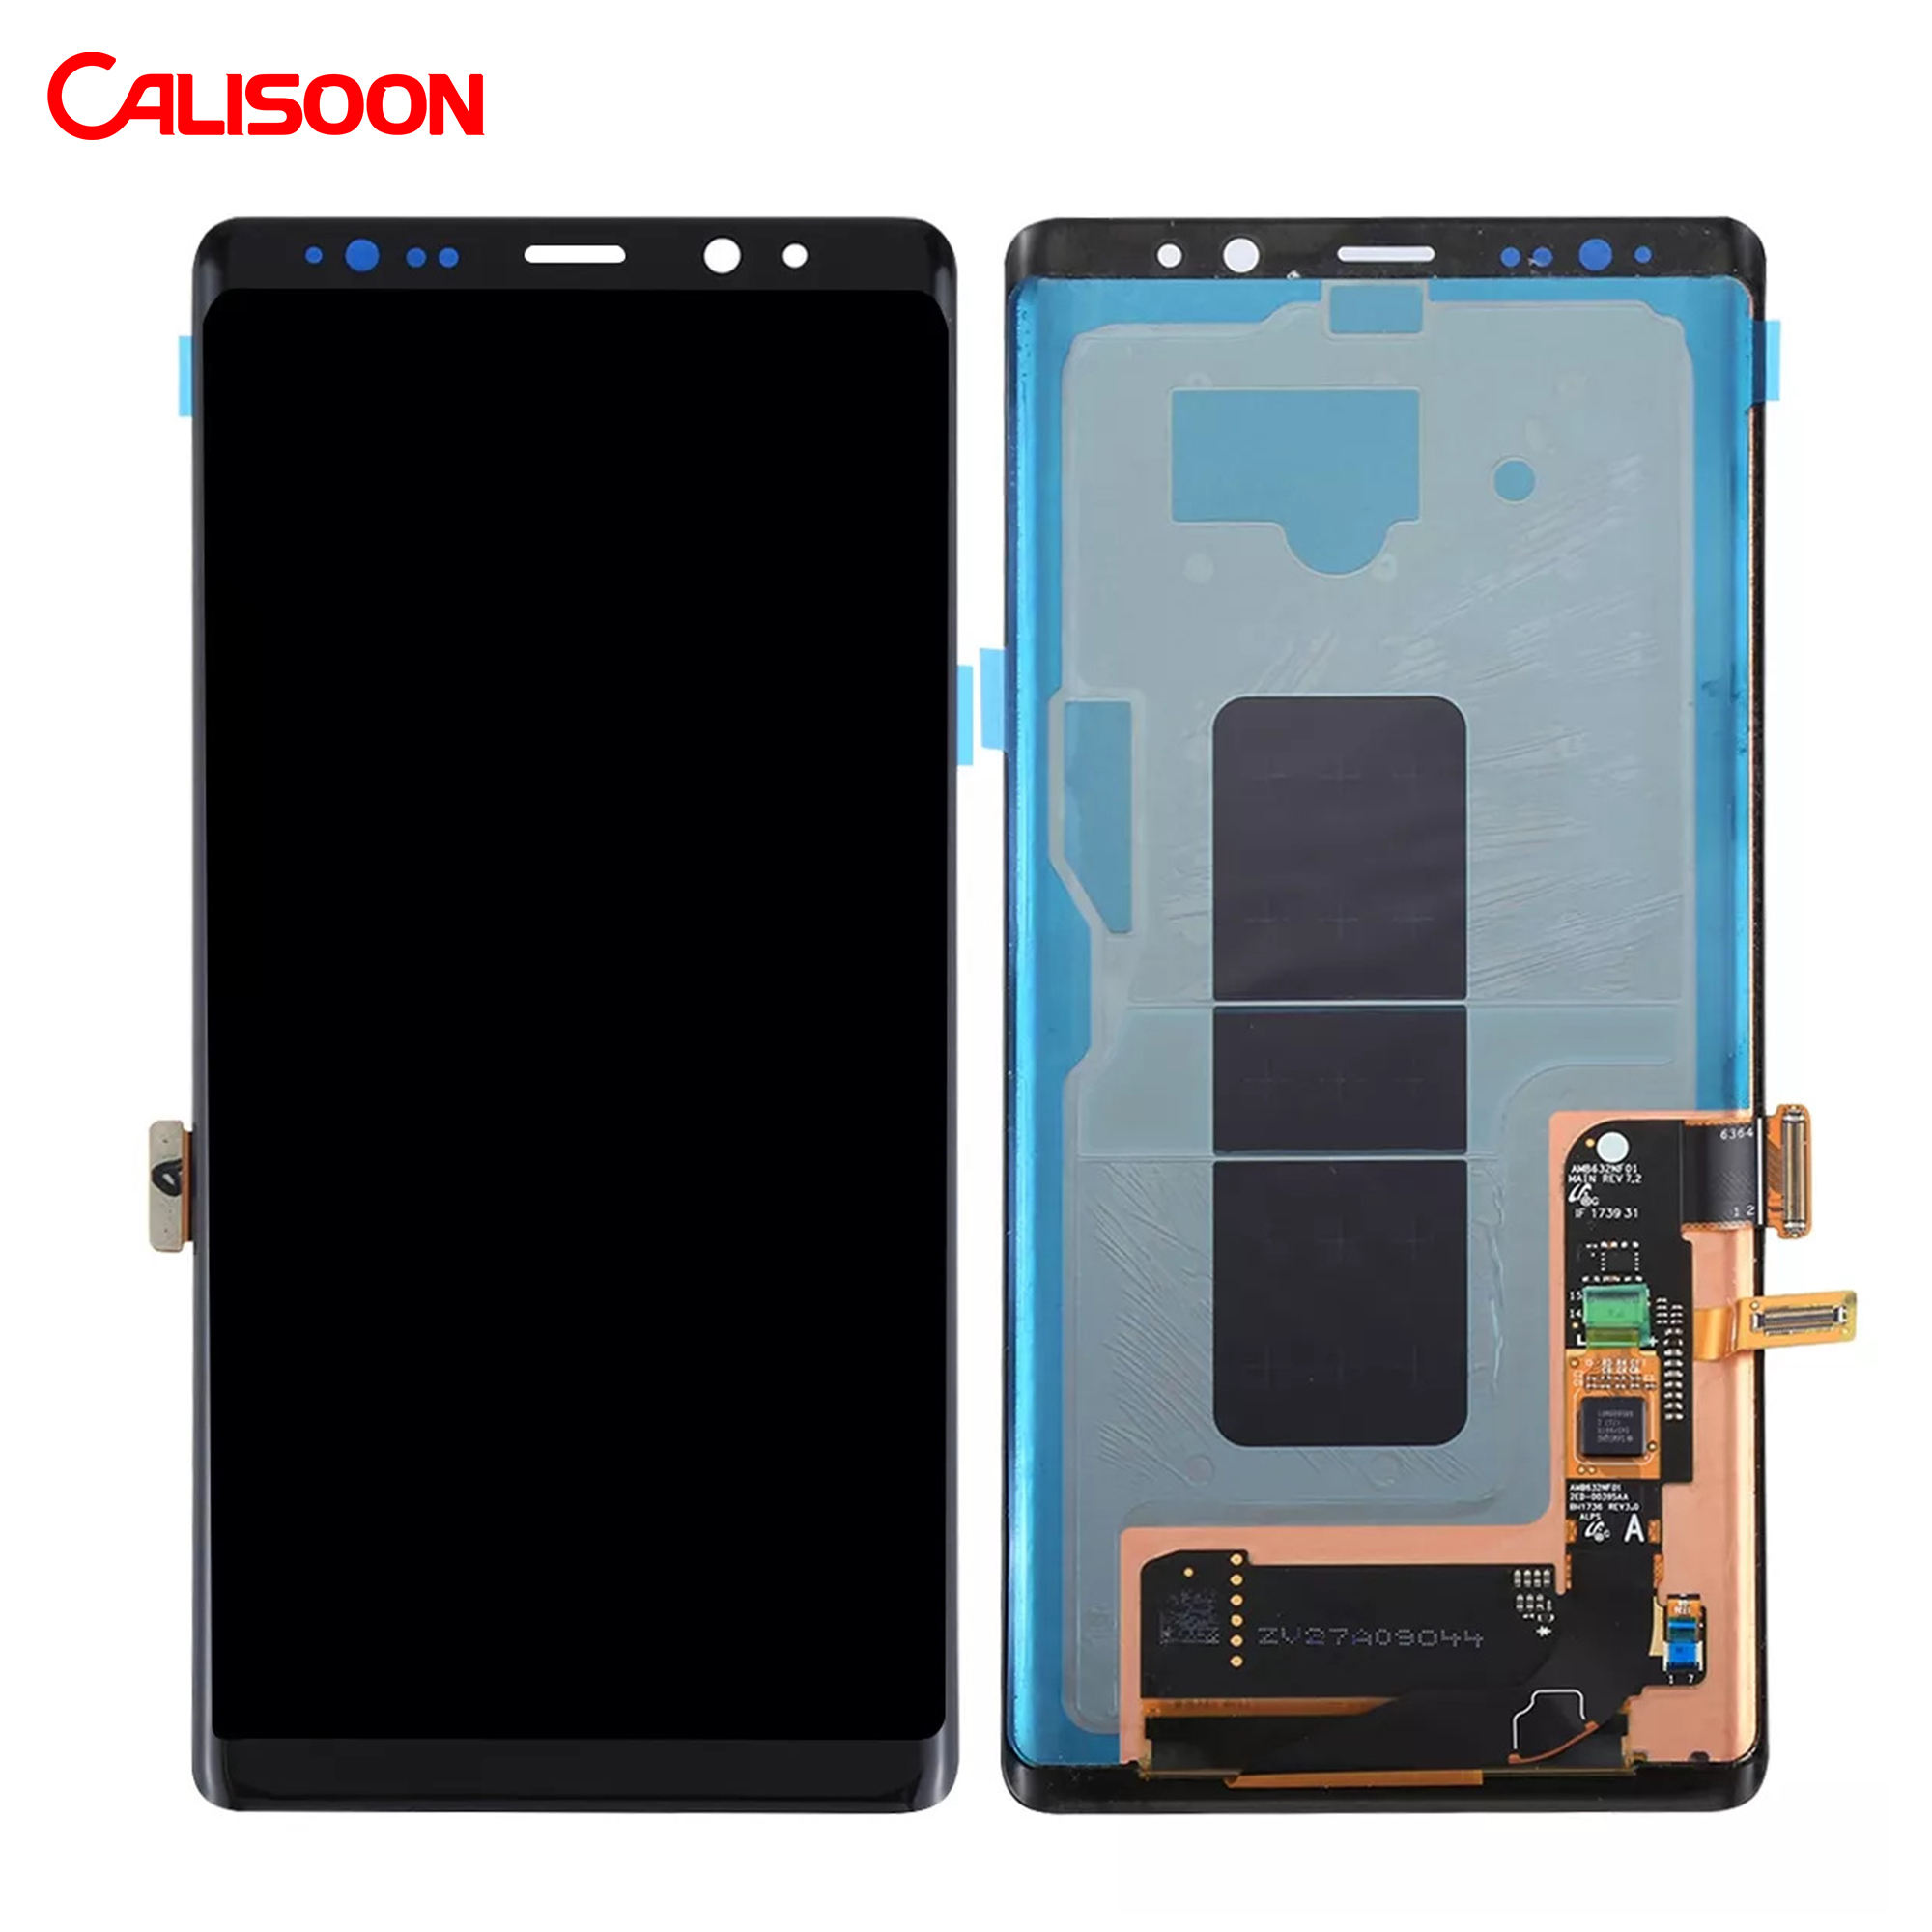 High Quality Lcd For Samsung Galaxy Note 8 Display Screen Replacement